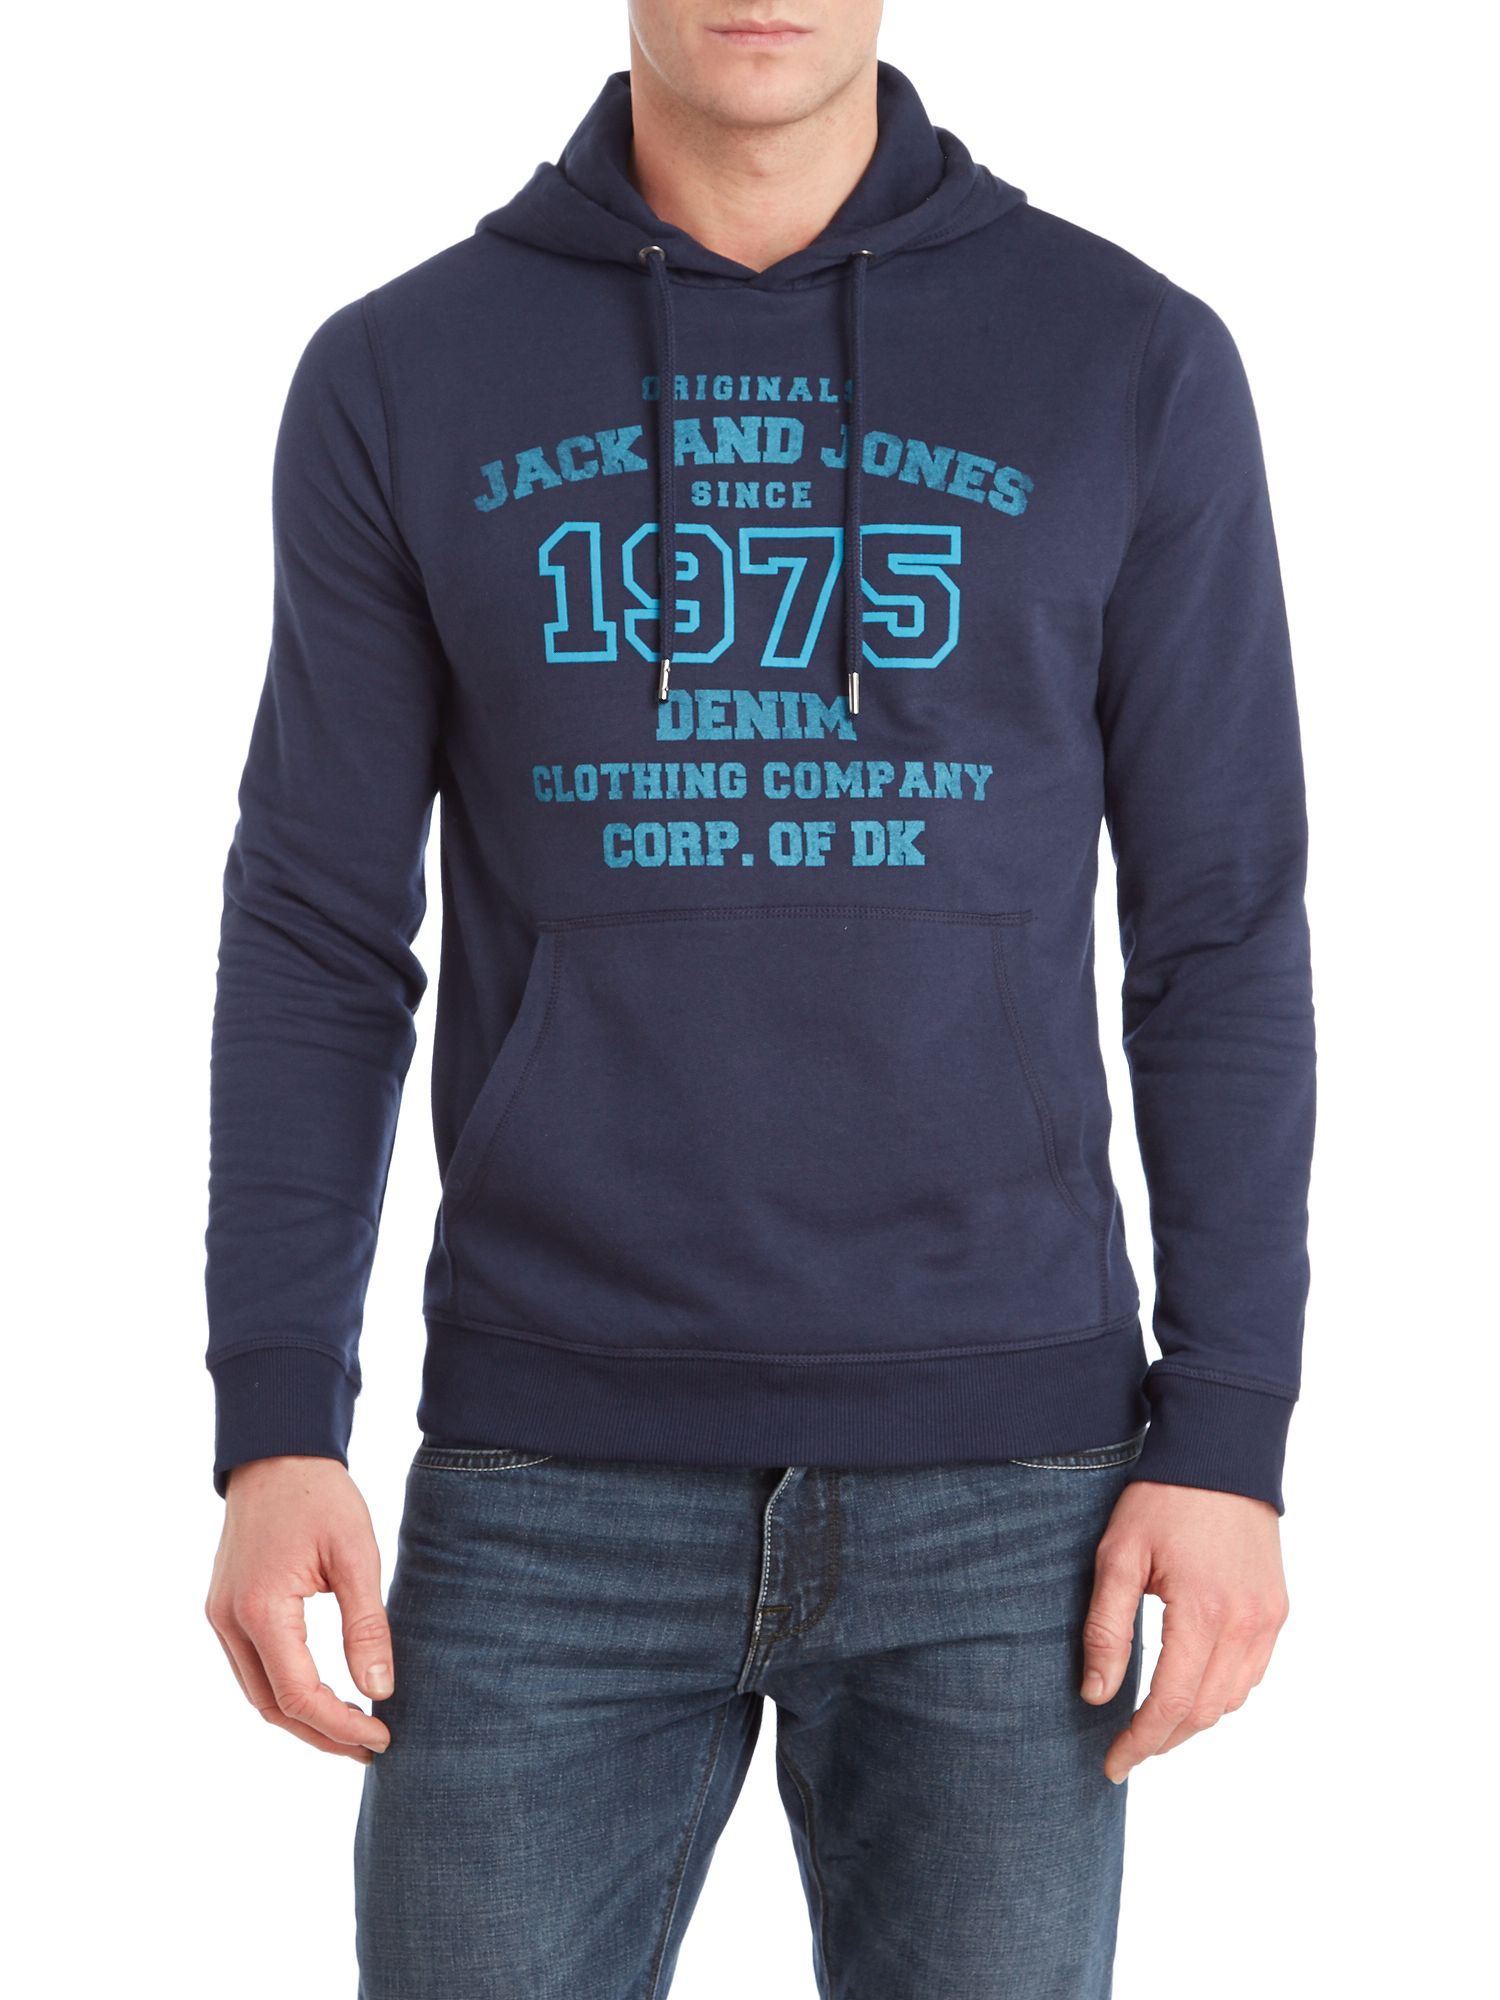 1975 denim hooded sweatshirt